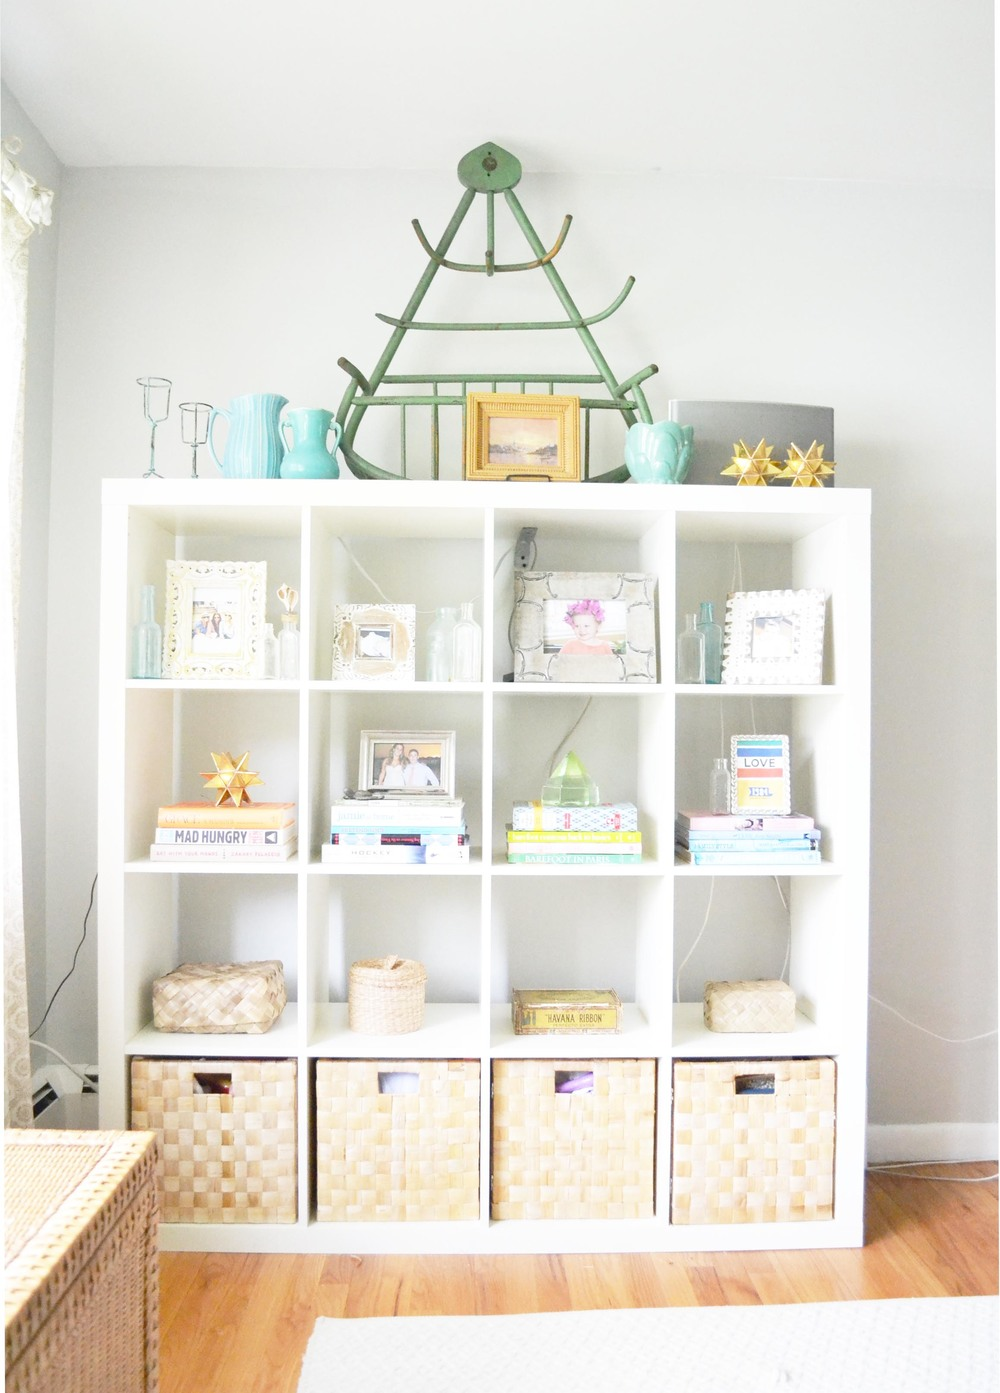 ikea shelves styled to perfection with old and new finds